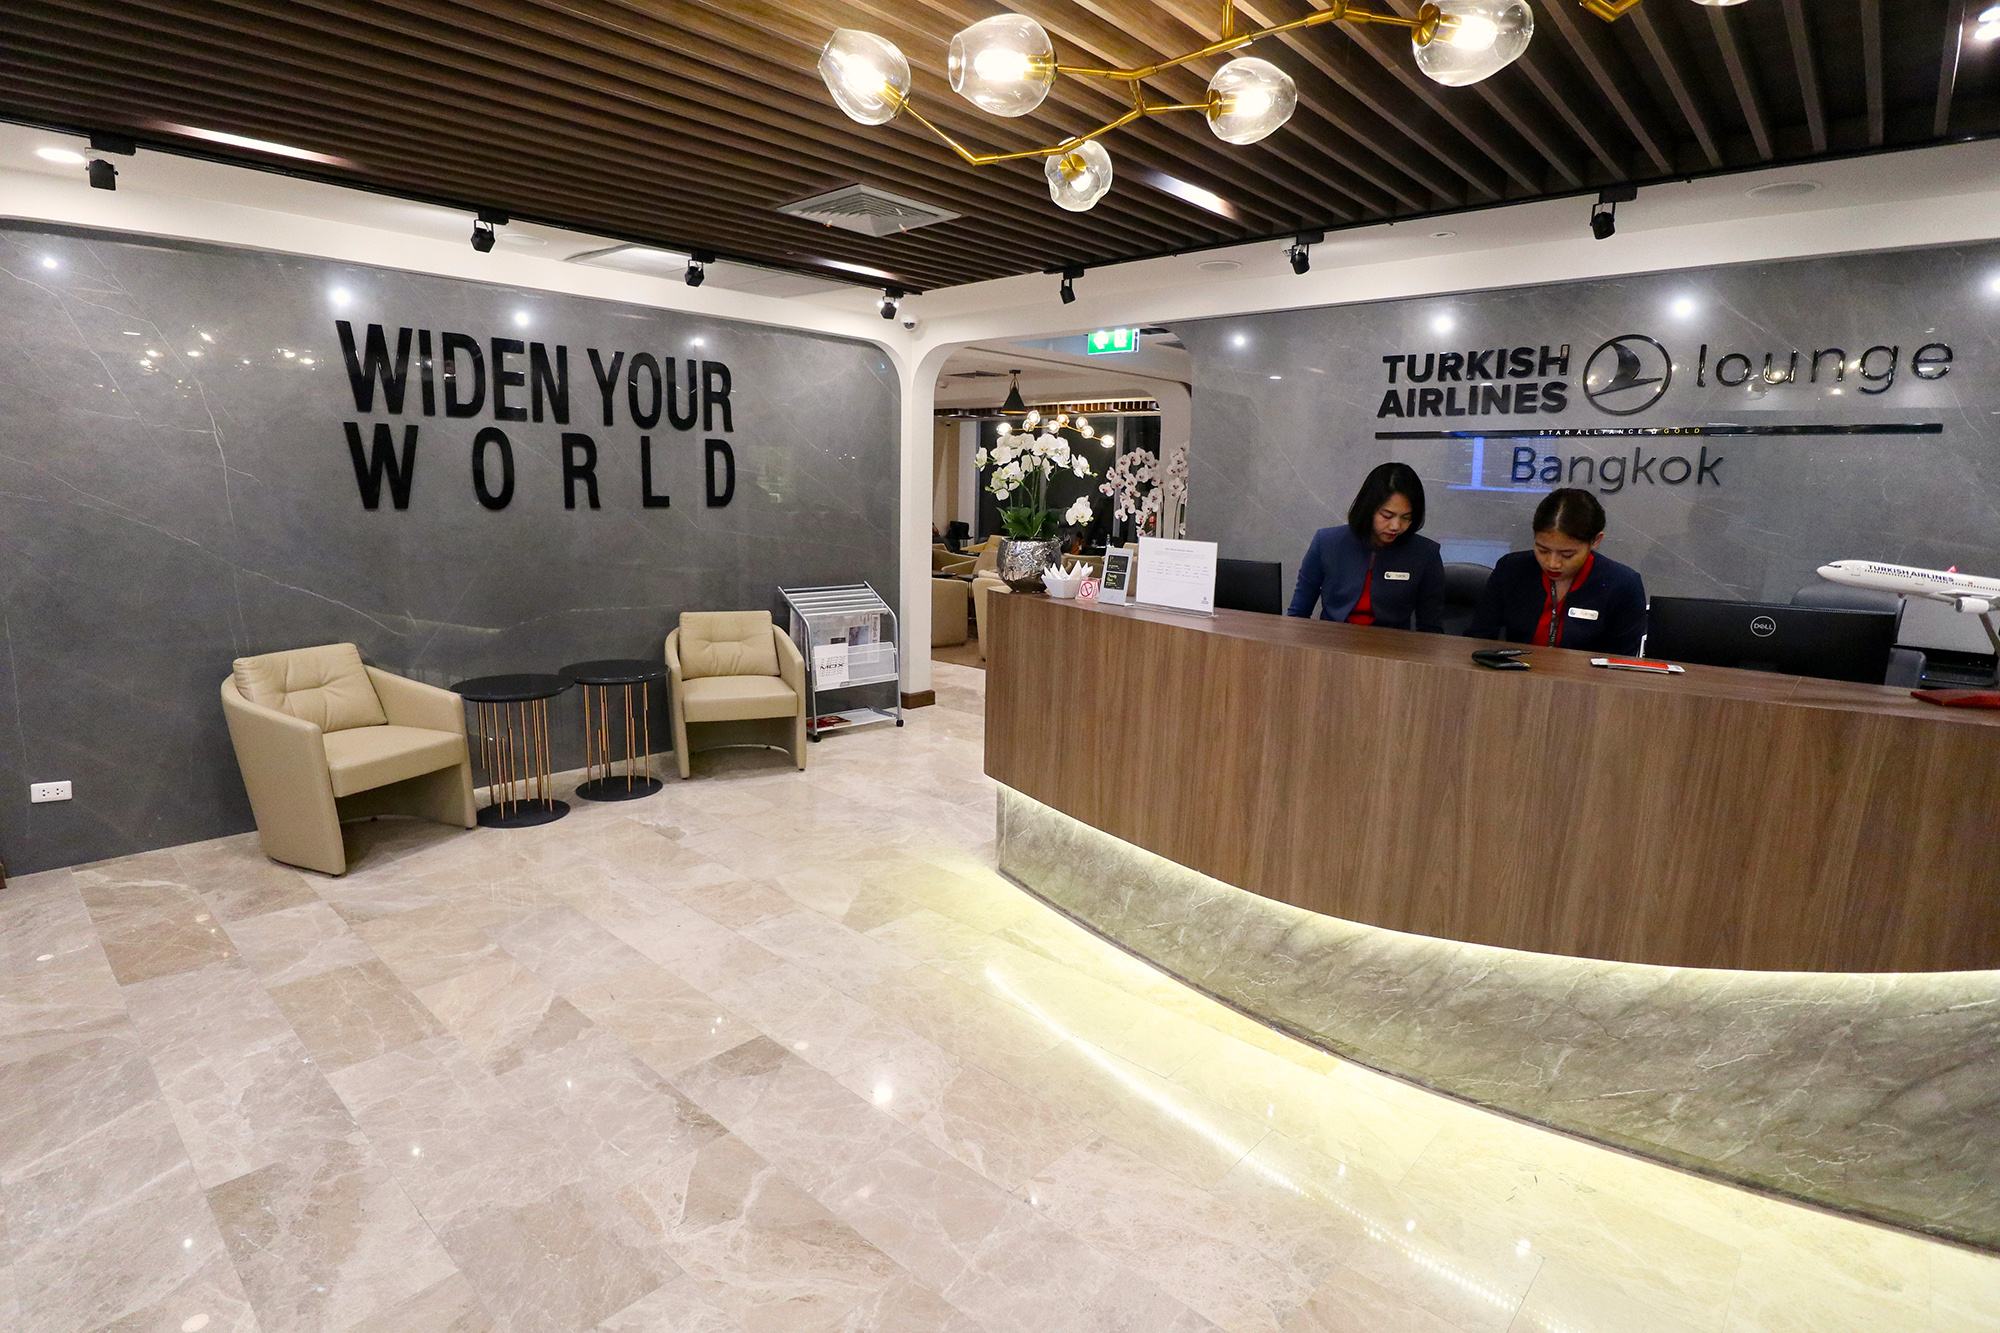 Review: Turkish Airlines Lounge Bangkok Suvarnabhumi